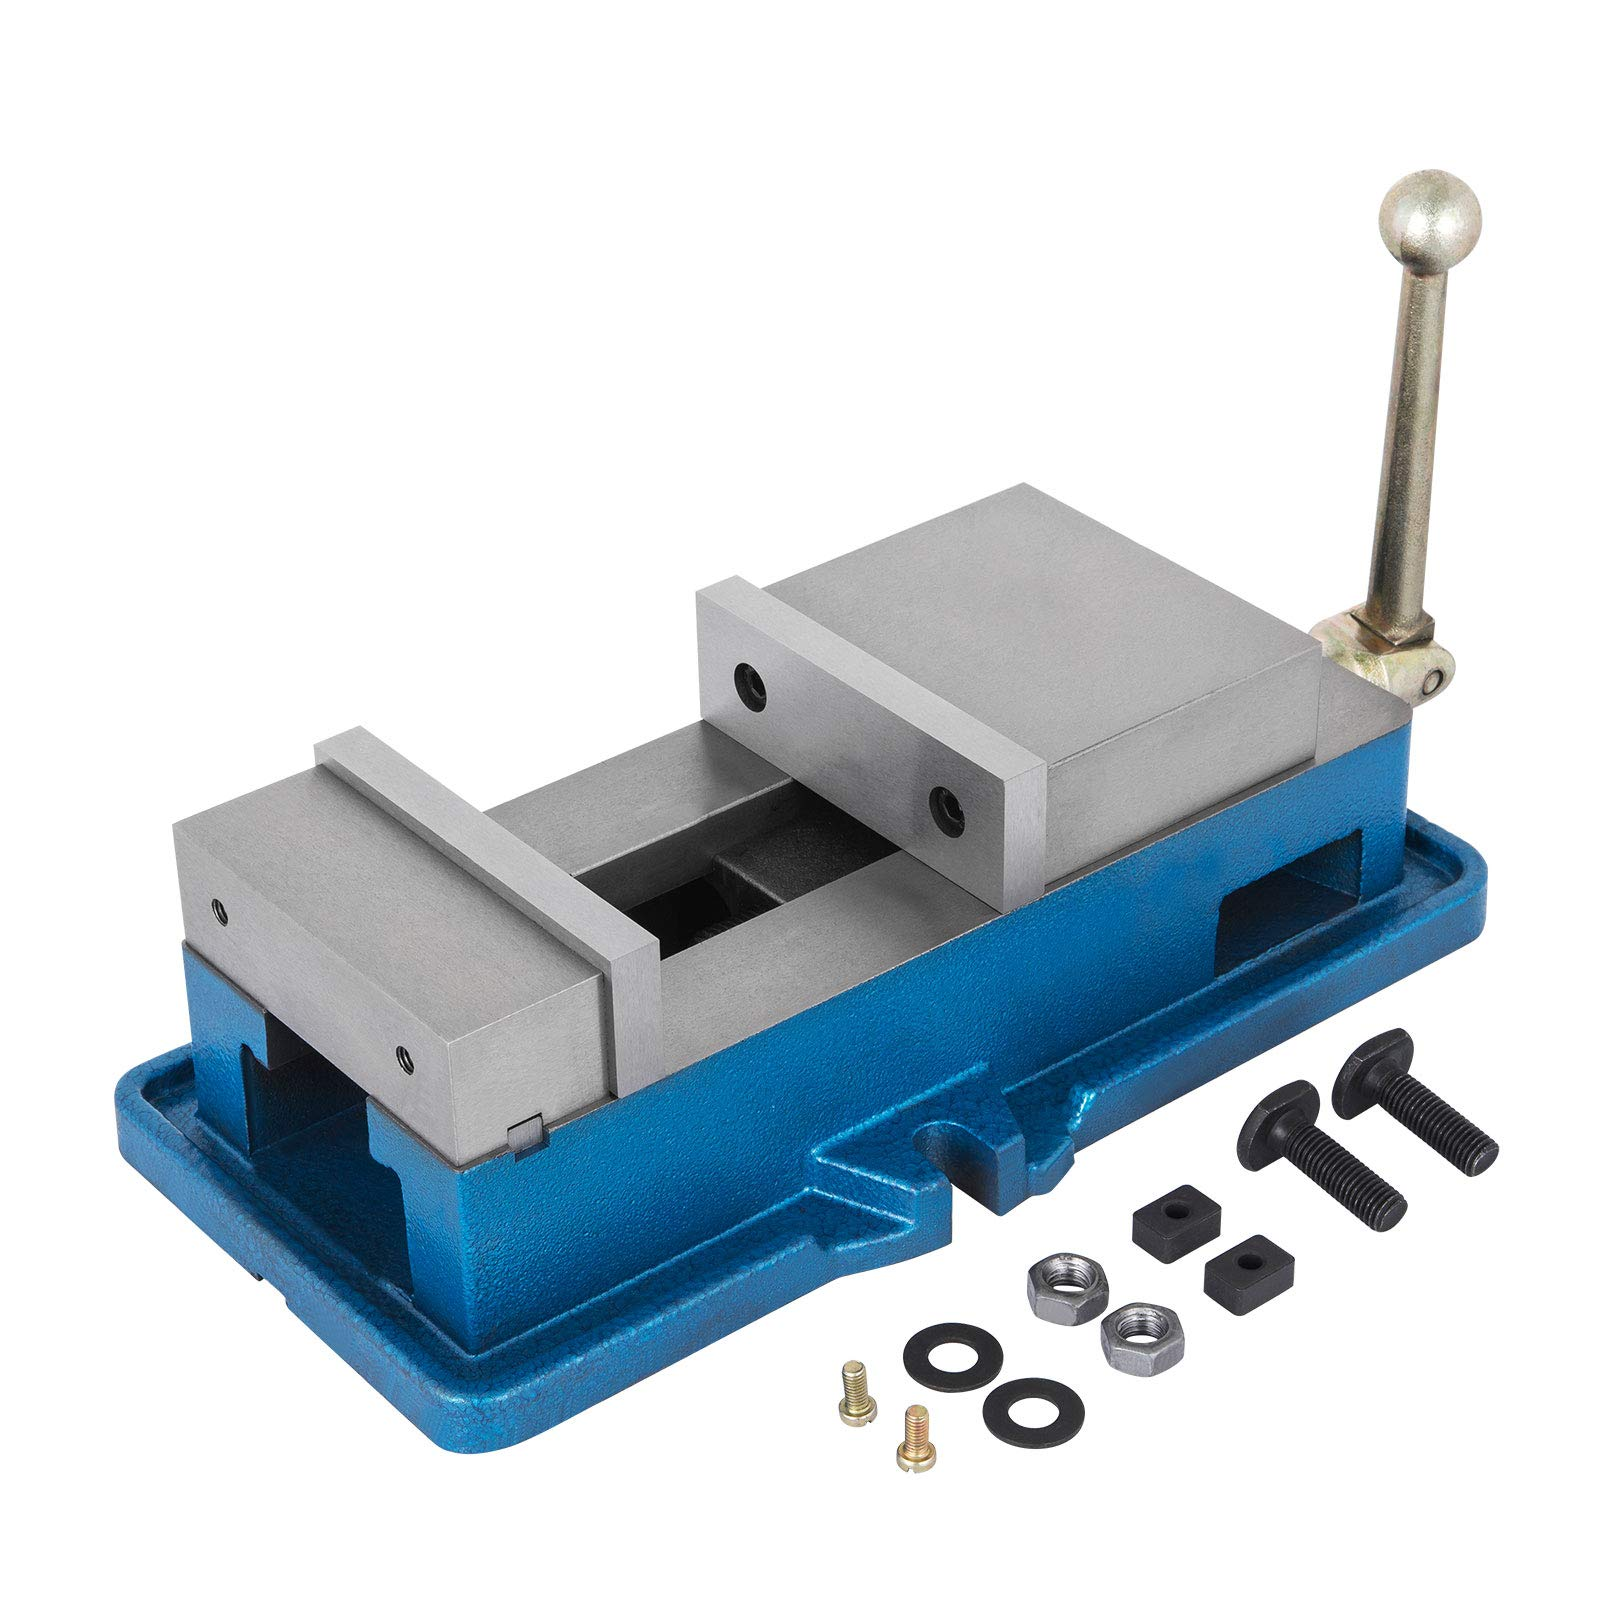 OrangeA Bench Clamp Vise High Precision Clamping Vise 4 Inch Jaw Width Accu-lock Vise Hardened Metal Milling Machine